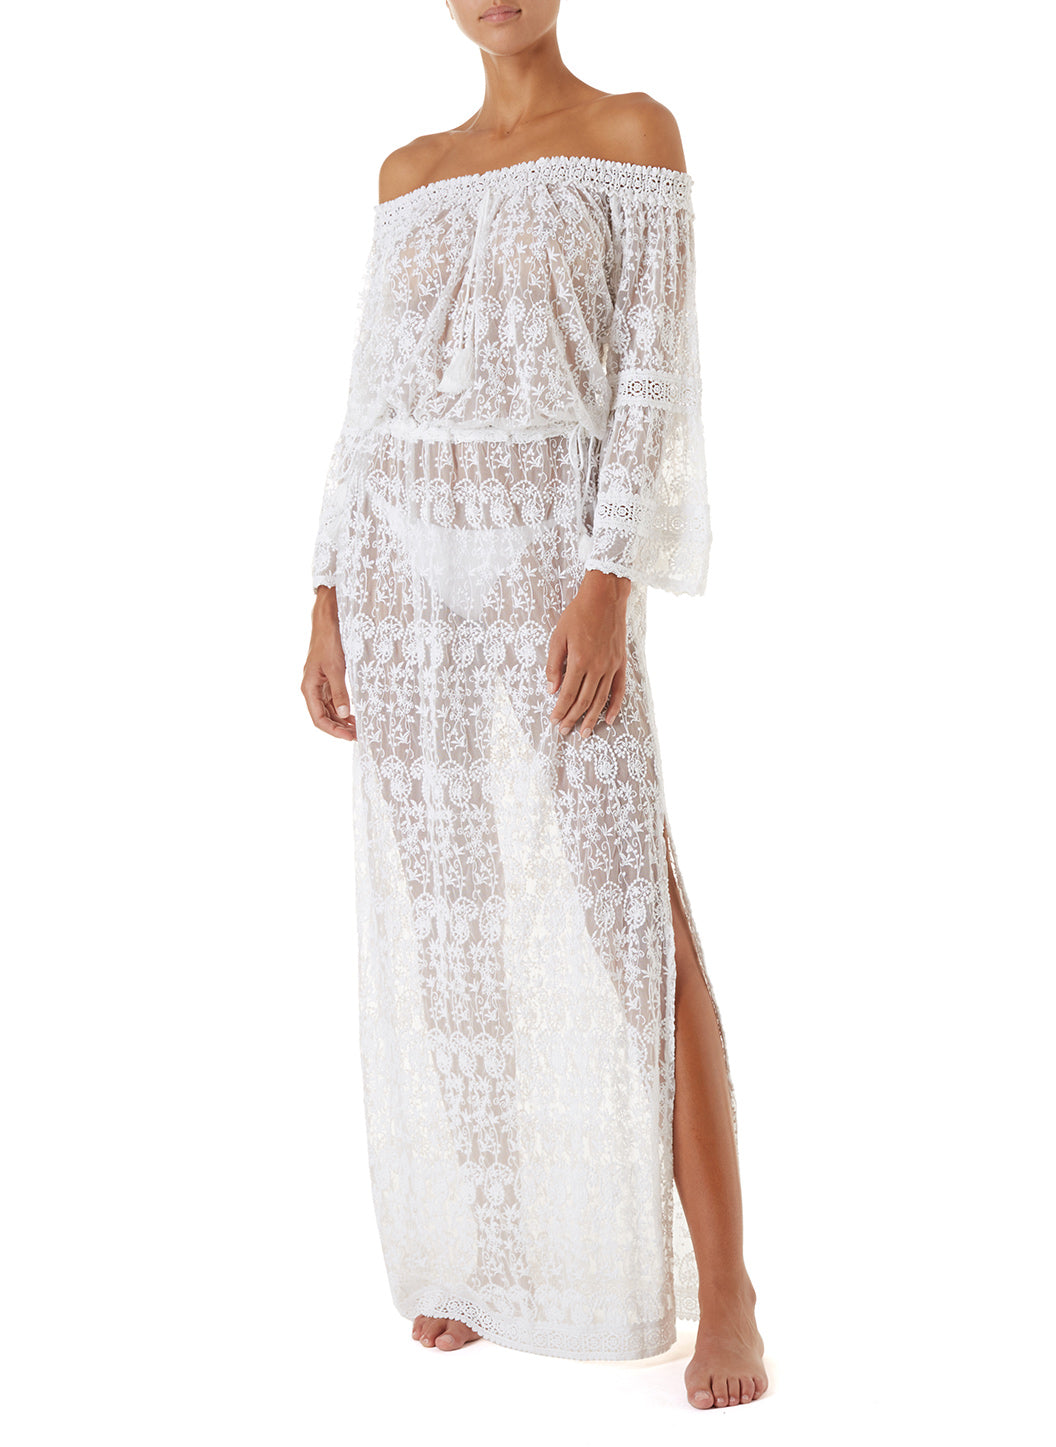 Sabina White Embroidered Off The Shoulder Maxi Dress - Melissa Odabash Beachwear